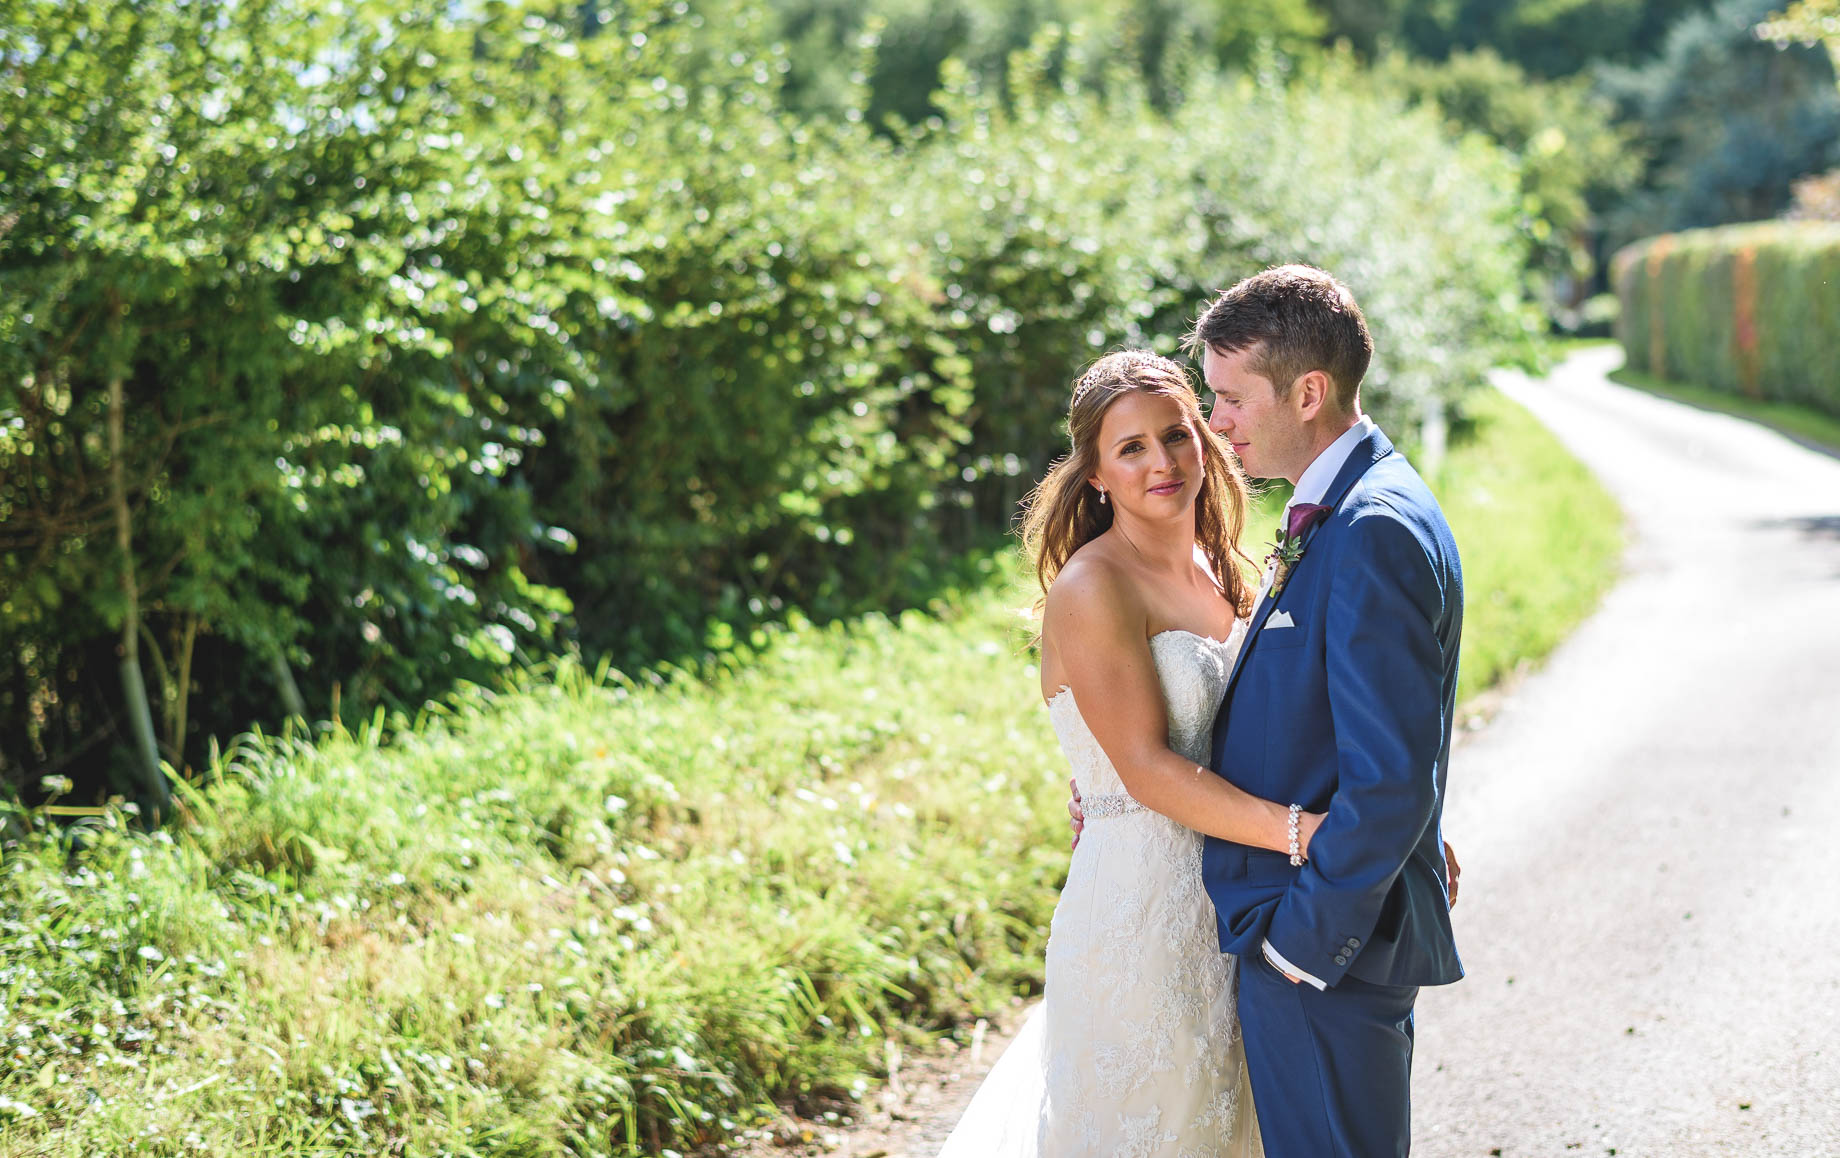 Gate Street Barn wedding photography - Guy Collier - Claire and Andy (80 of 192)